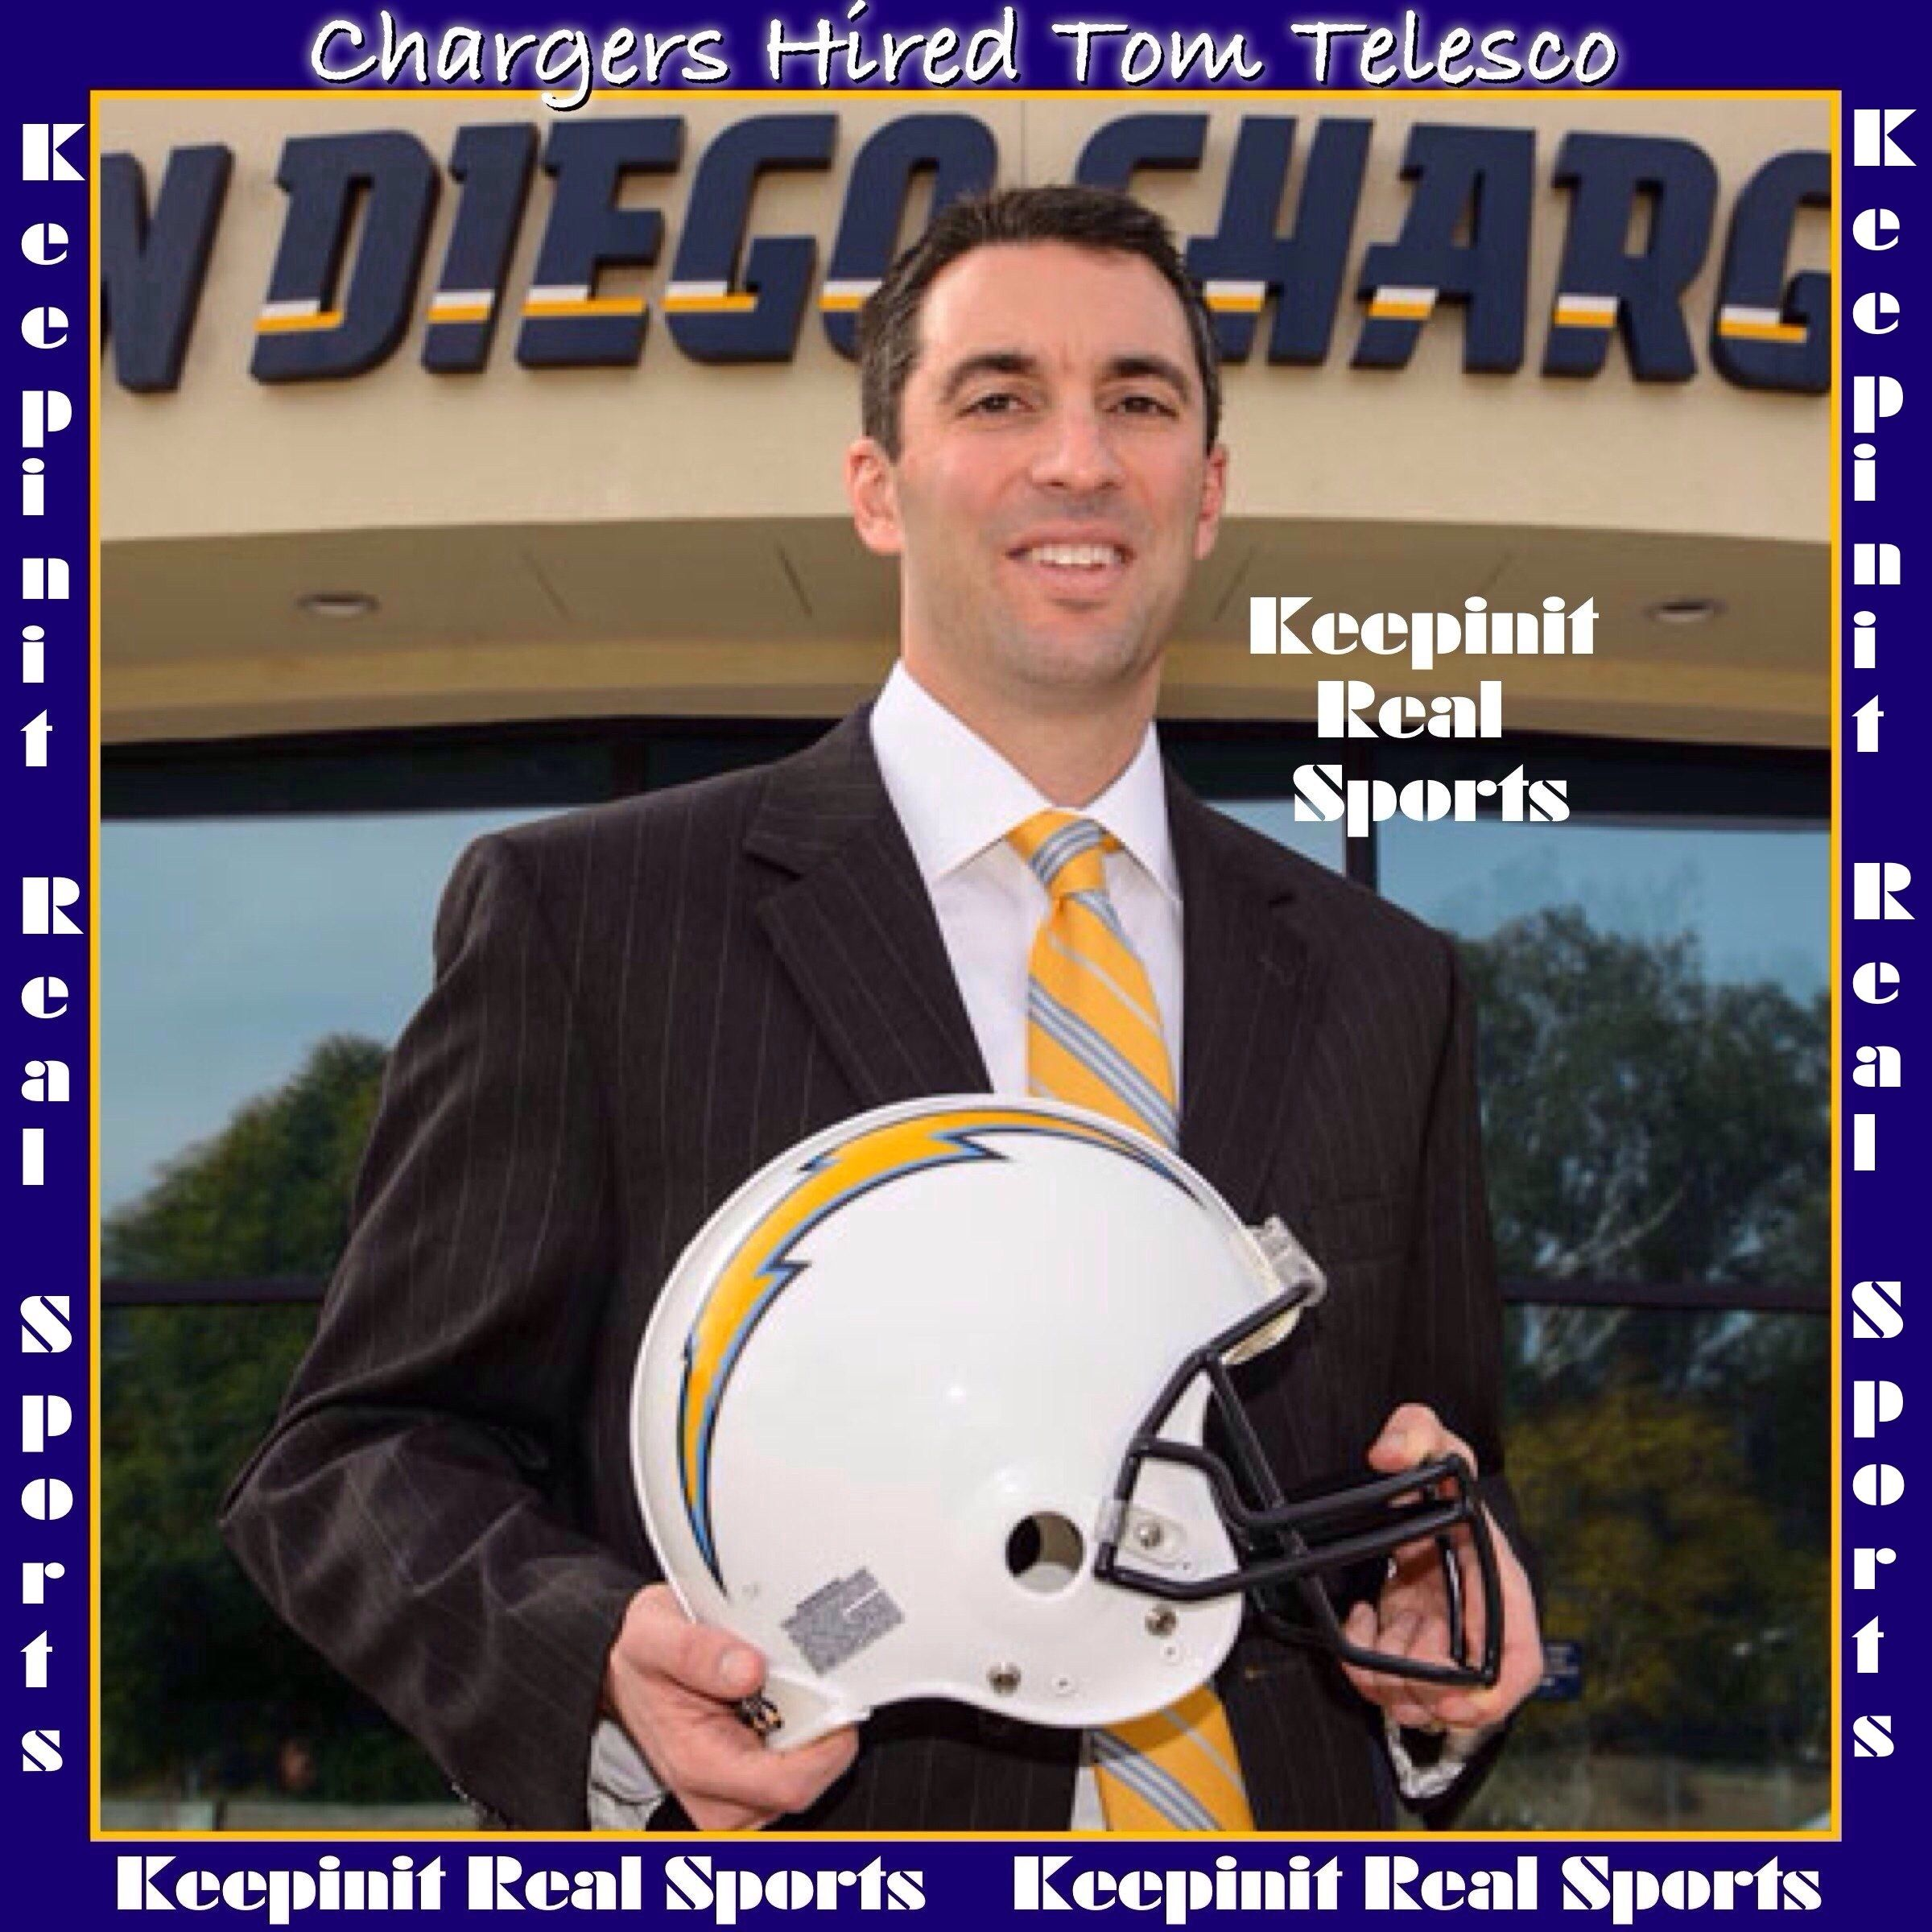 Keepinit Real Nfl News Chargers Hired Tom Telesco San Diego Chargers President Dean Spanos Hired Tom Telesco San Diego Chargers Nfl News Los Angeles Chargers